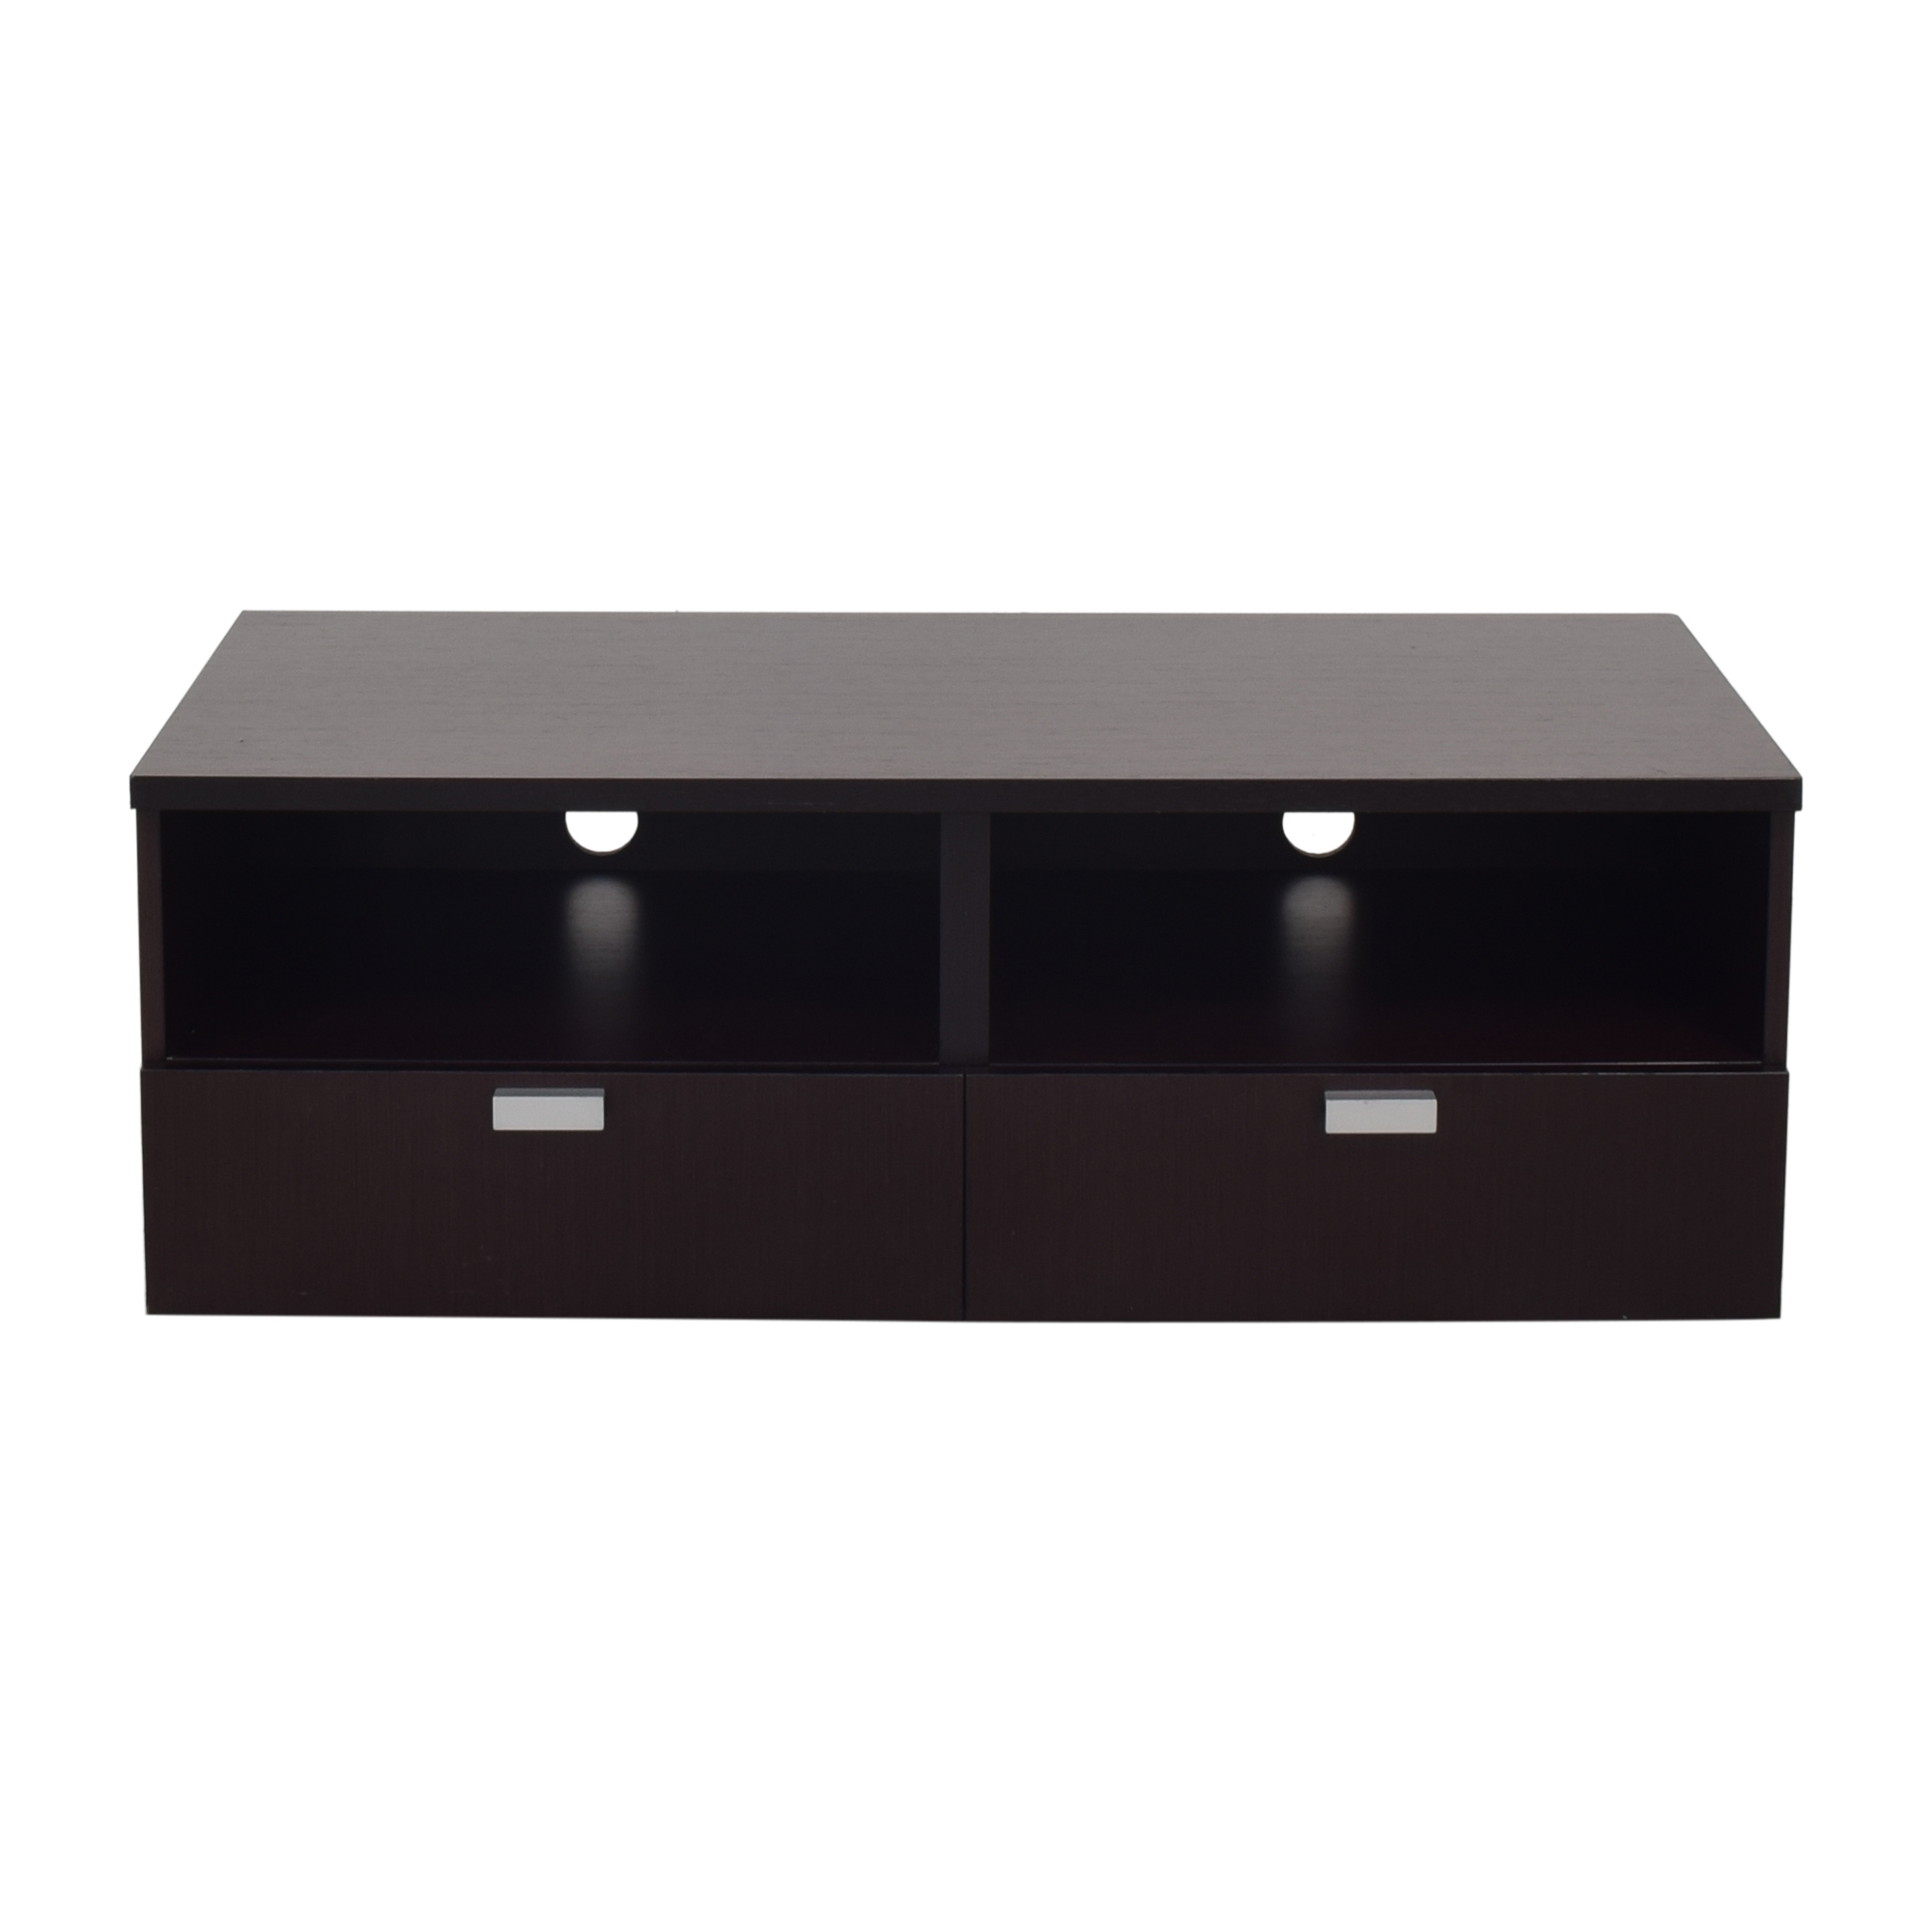 Jensen-Lewis Jensen-Lewis Media Console on sale